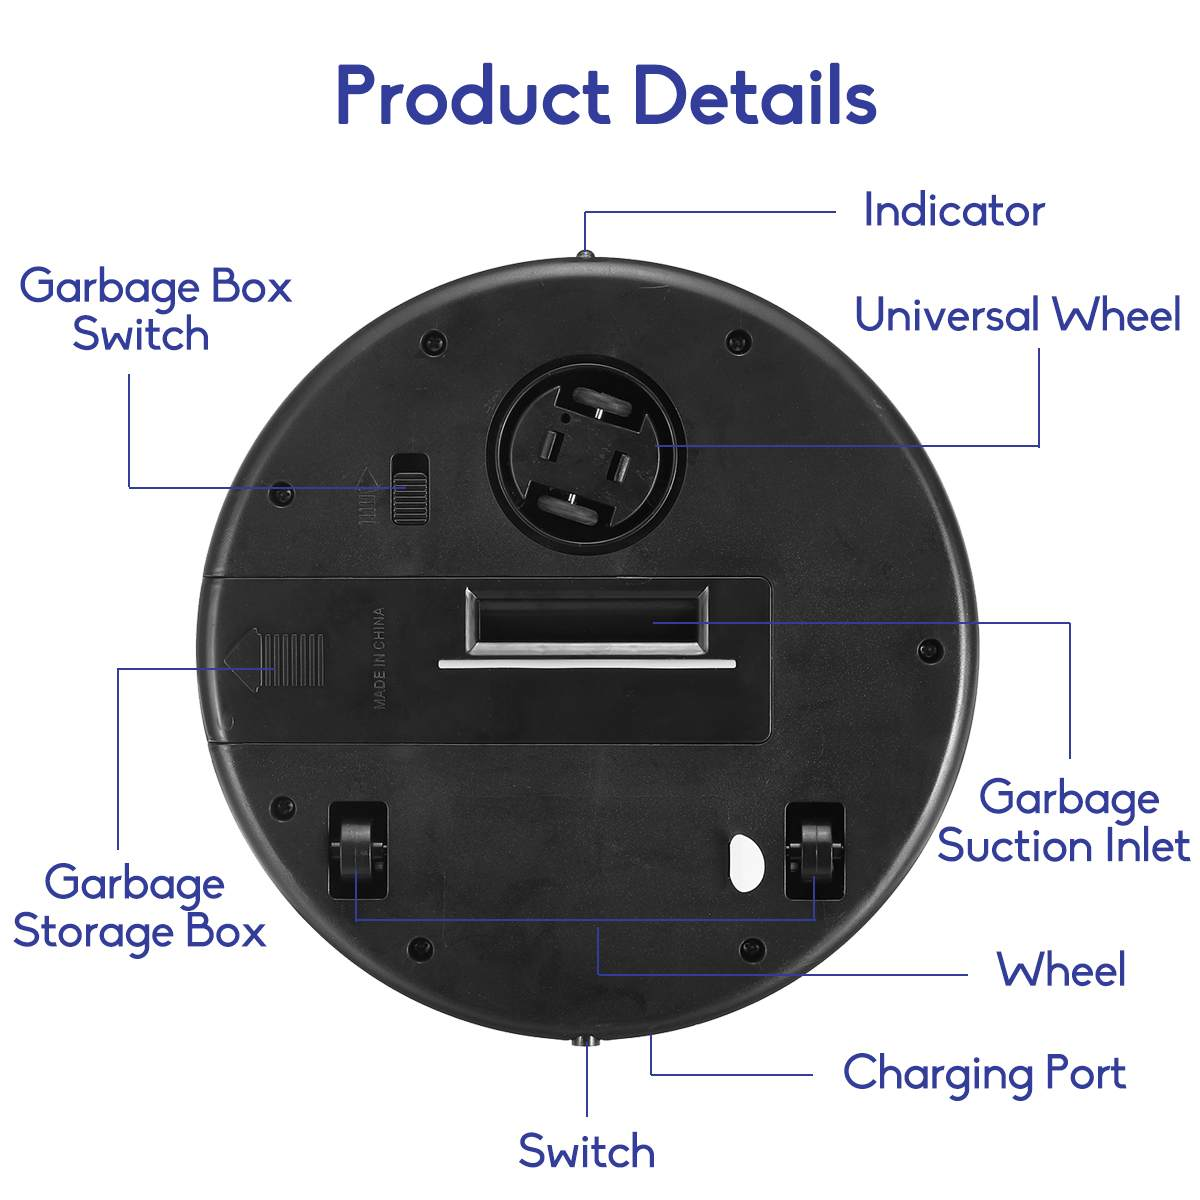 Ha93e4a0c384c404fa0b3b020969fb645g Smart Automatic Robot Vacuum Cleaning Machine Intelligent Floor Sweeping Dust Catcher Carpet Cleaner For Home Automatic Cleaning